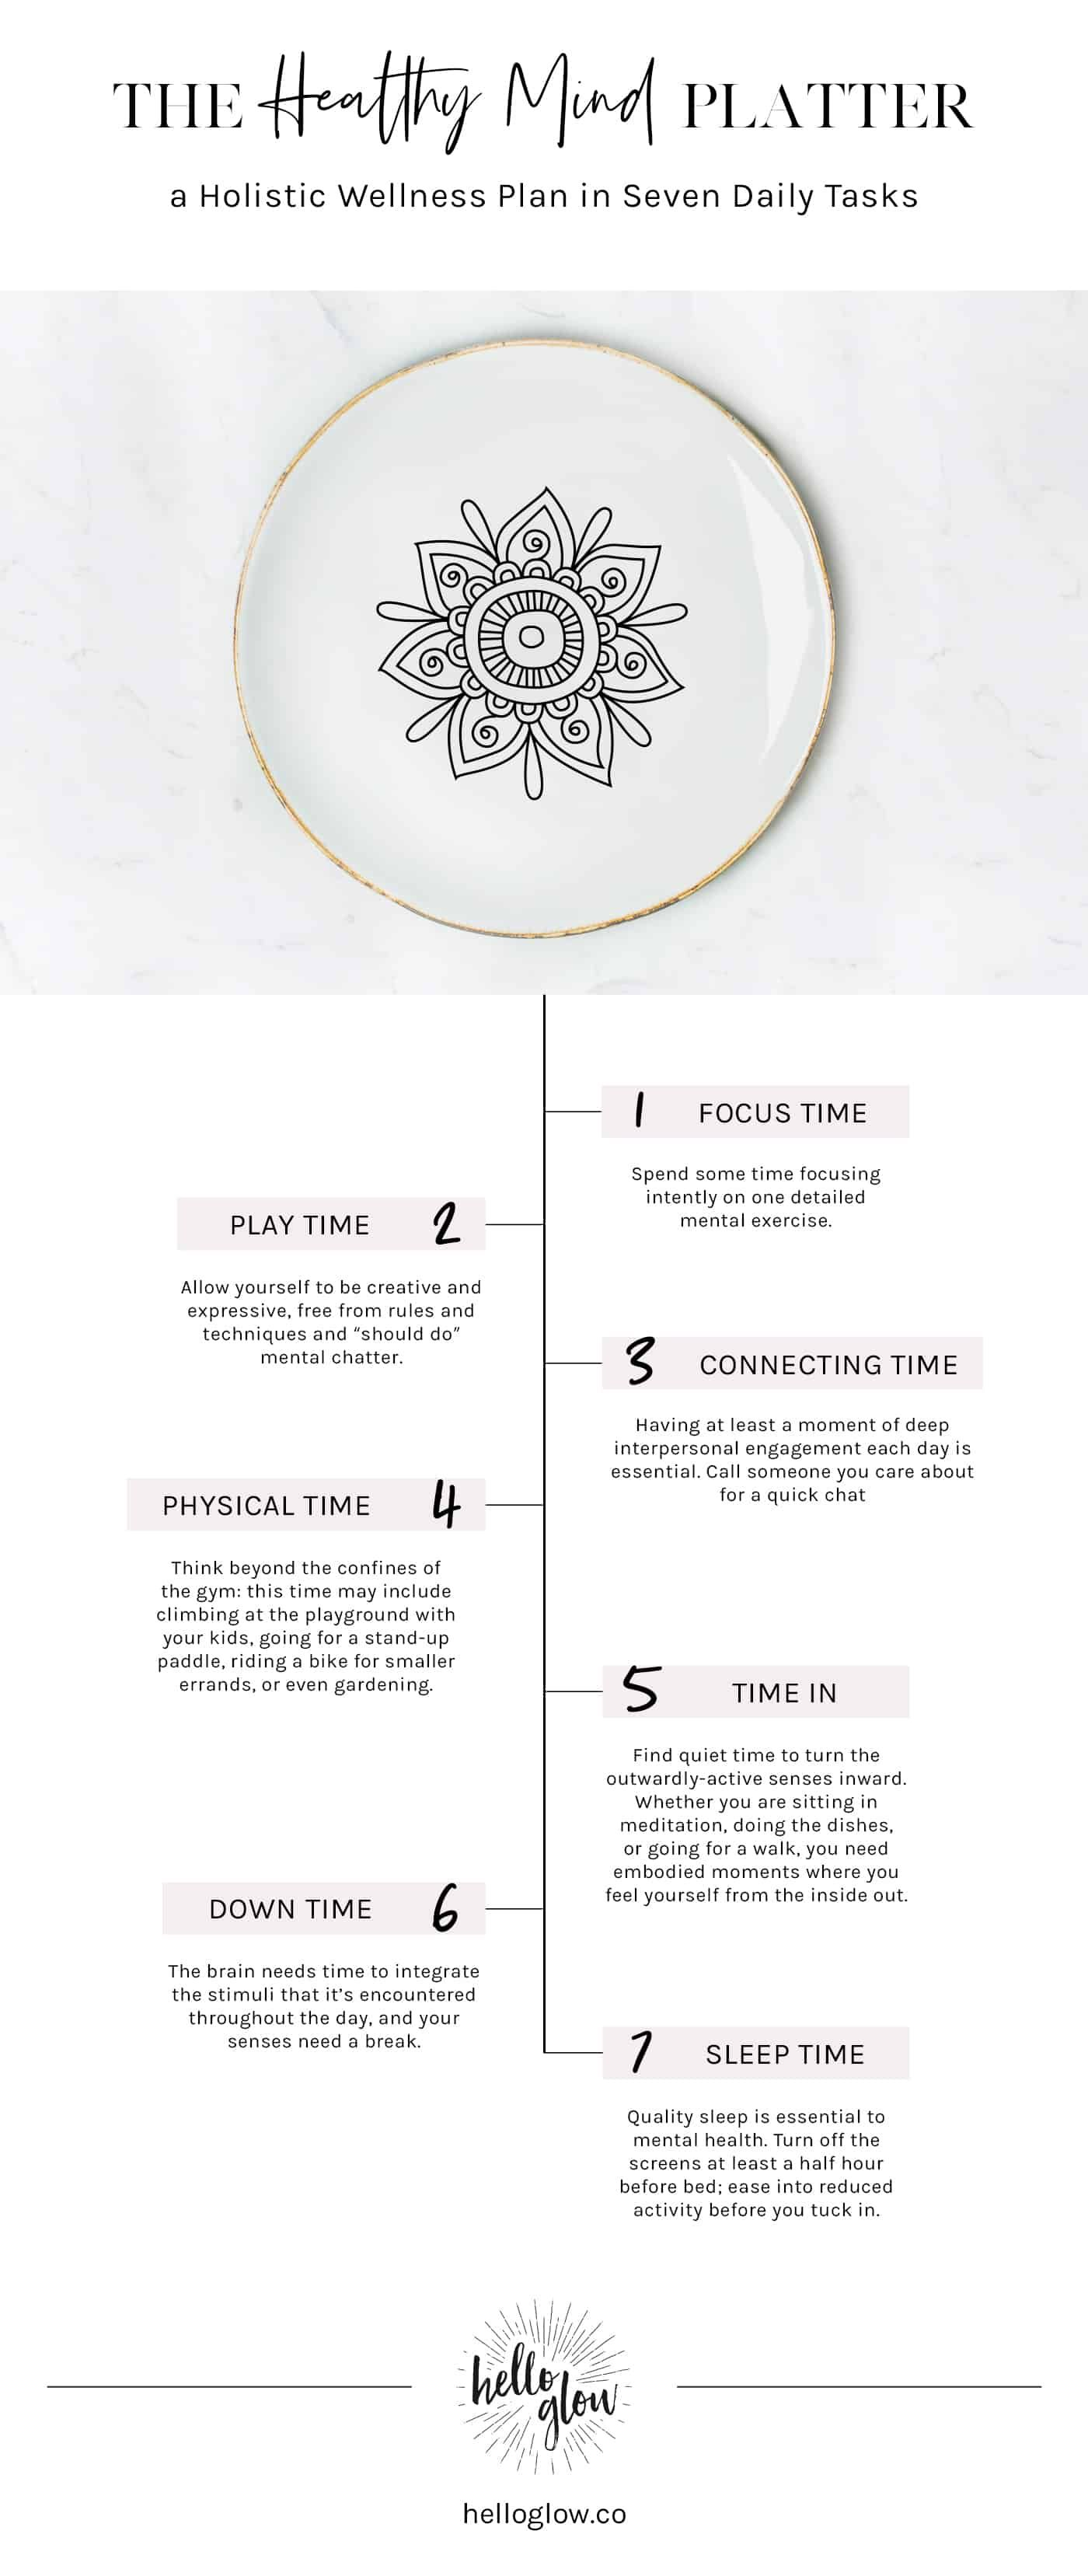 The Healthy Mind Platter A Holistic Wellness Plan In 7